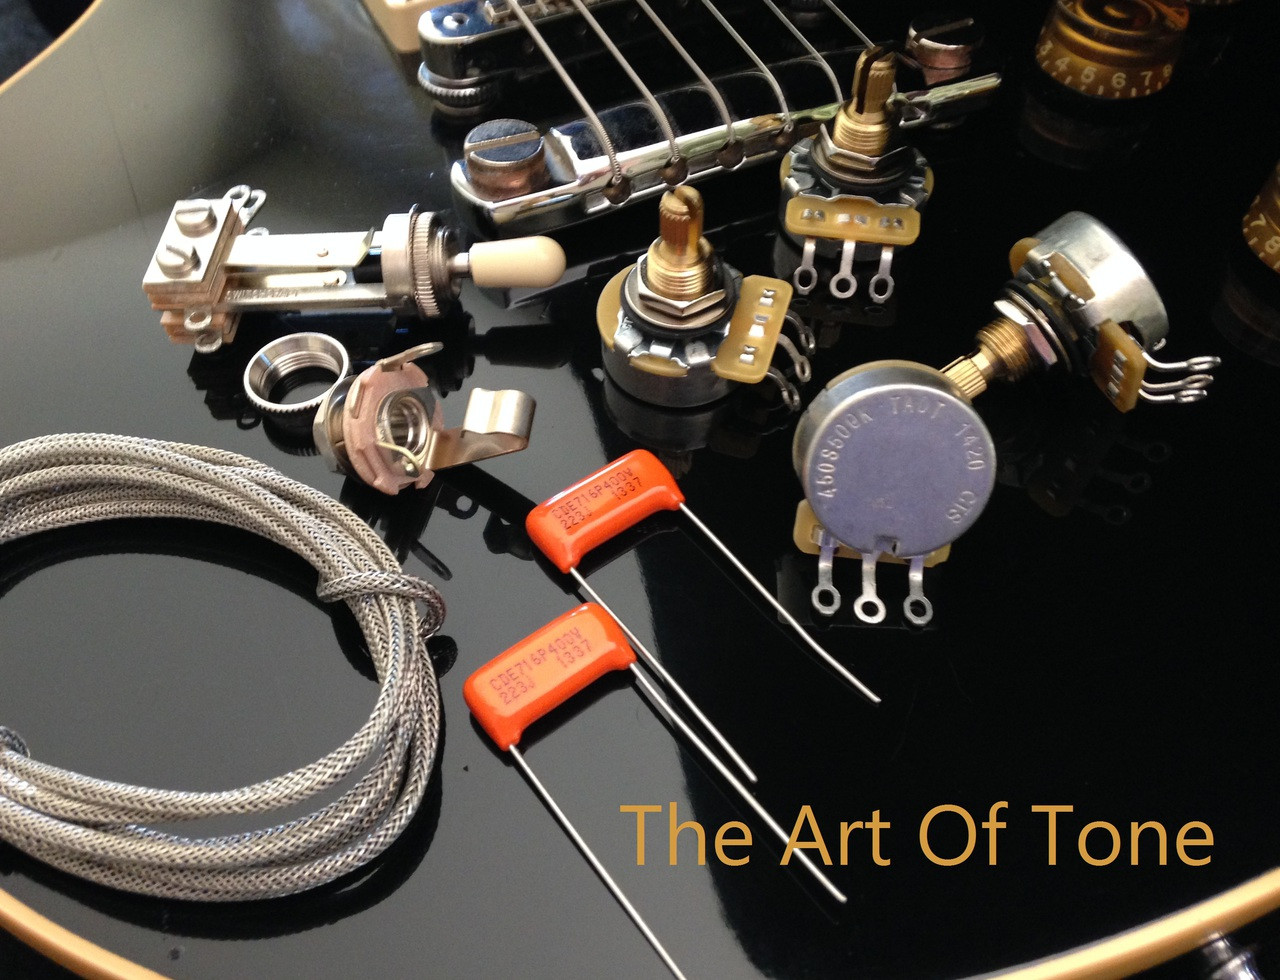 medium resolution of taot gibson les paul short shaft cts taot 450s 525k pots les paul wiring kit les paul wiring kit